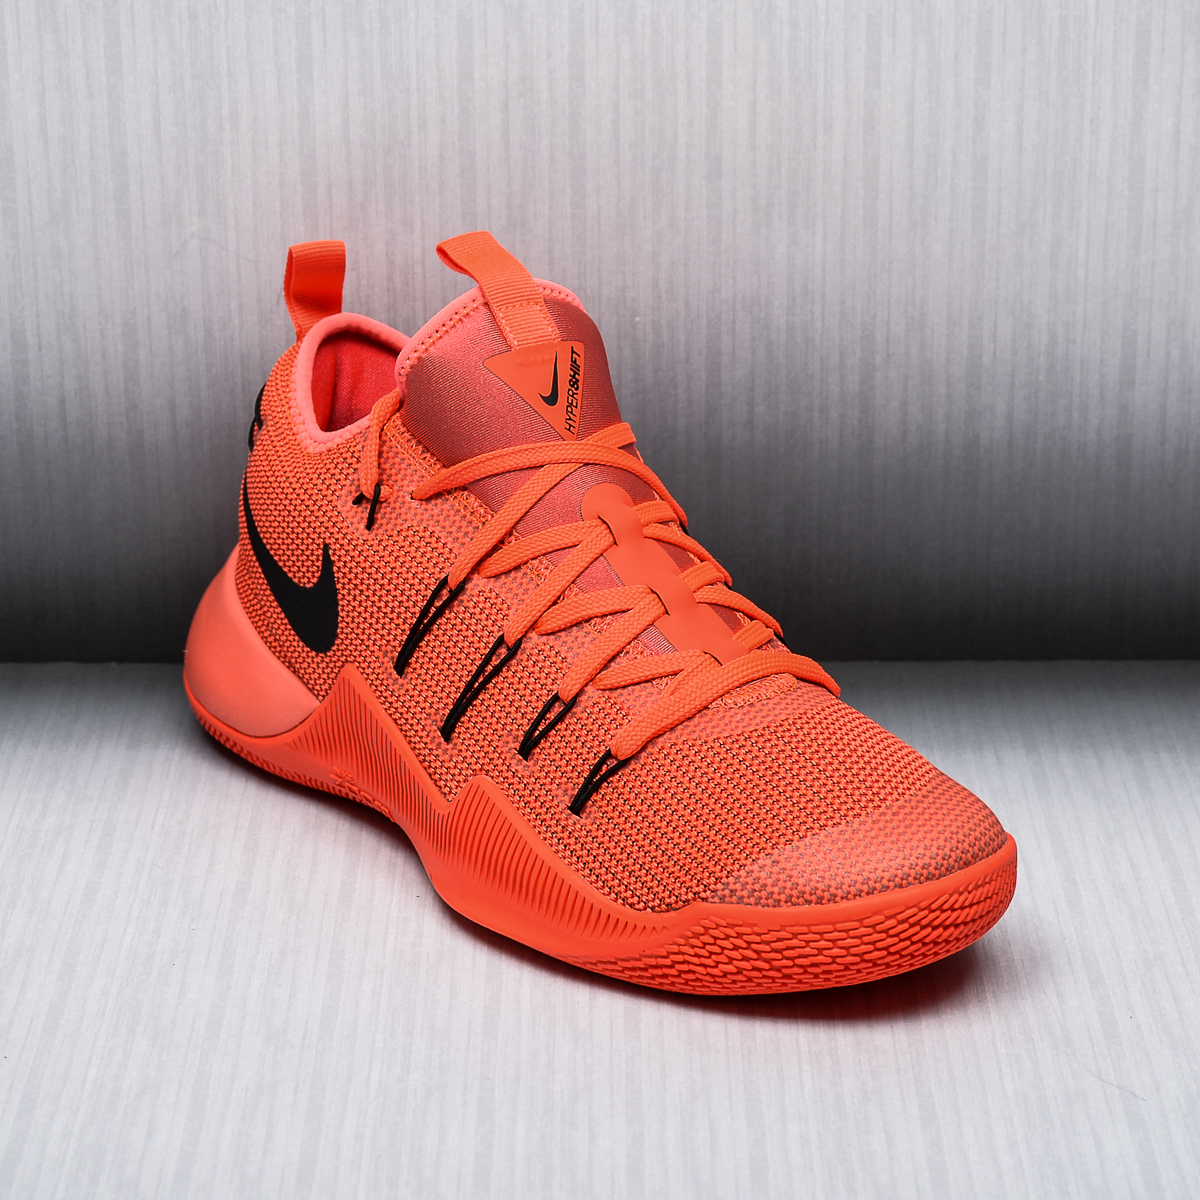 new arrival 0f07b b86df ... usa canada 381c8 edcf3 nike hypershift orange sølv nike hypershift gul  rød striking 67db7 93785 97100